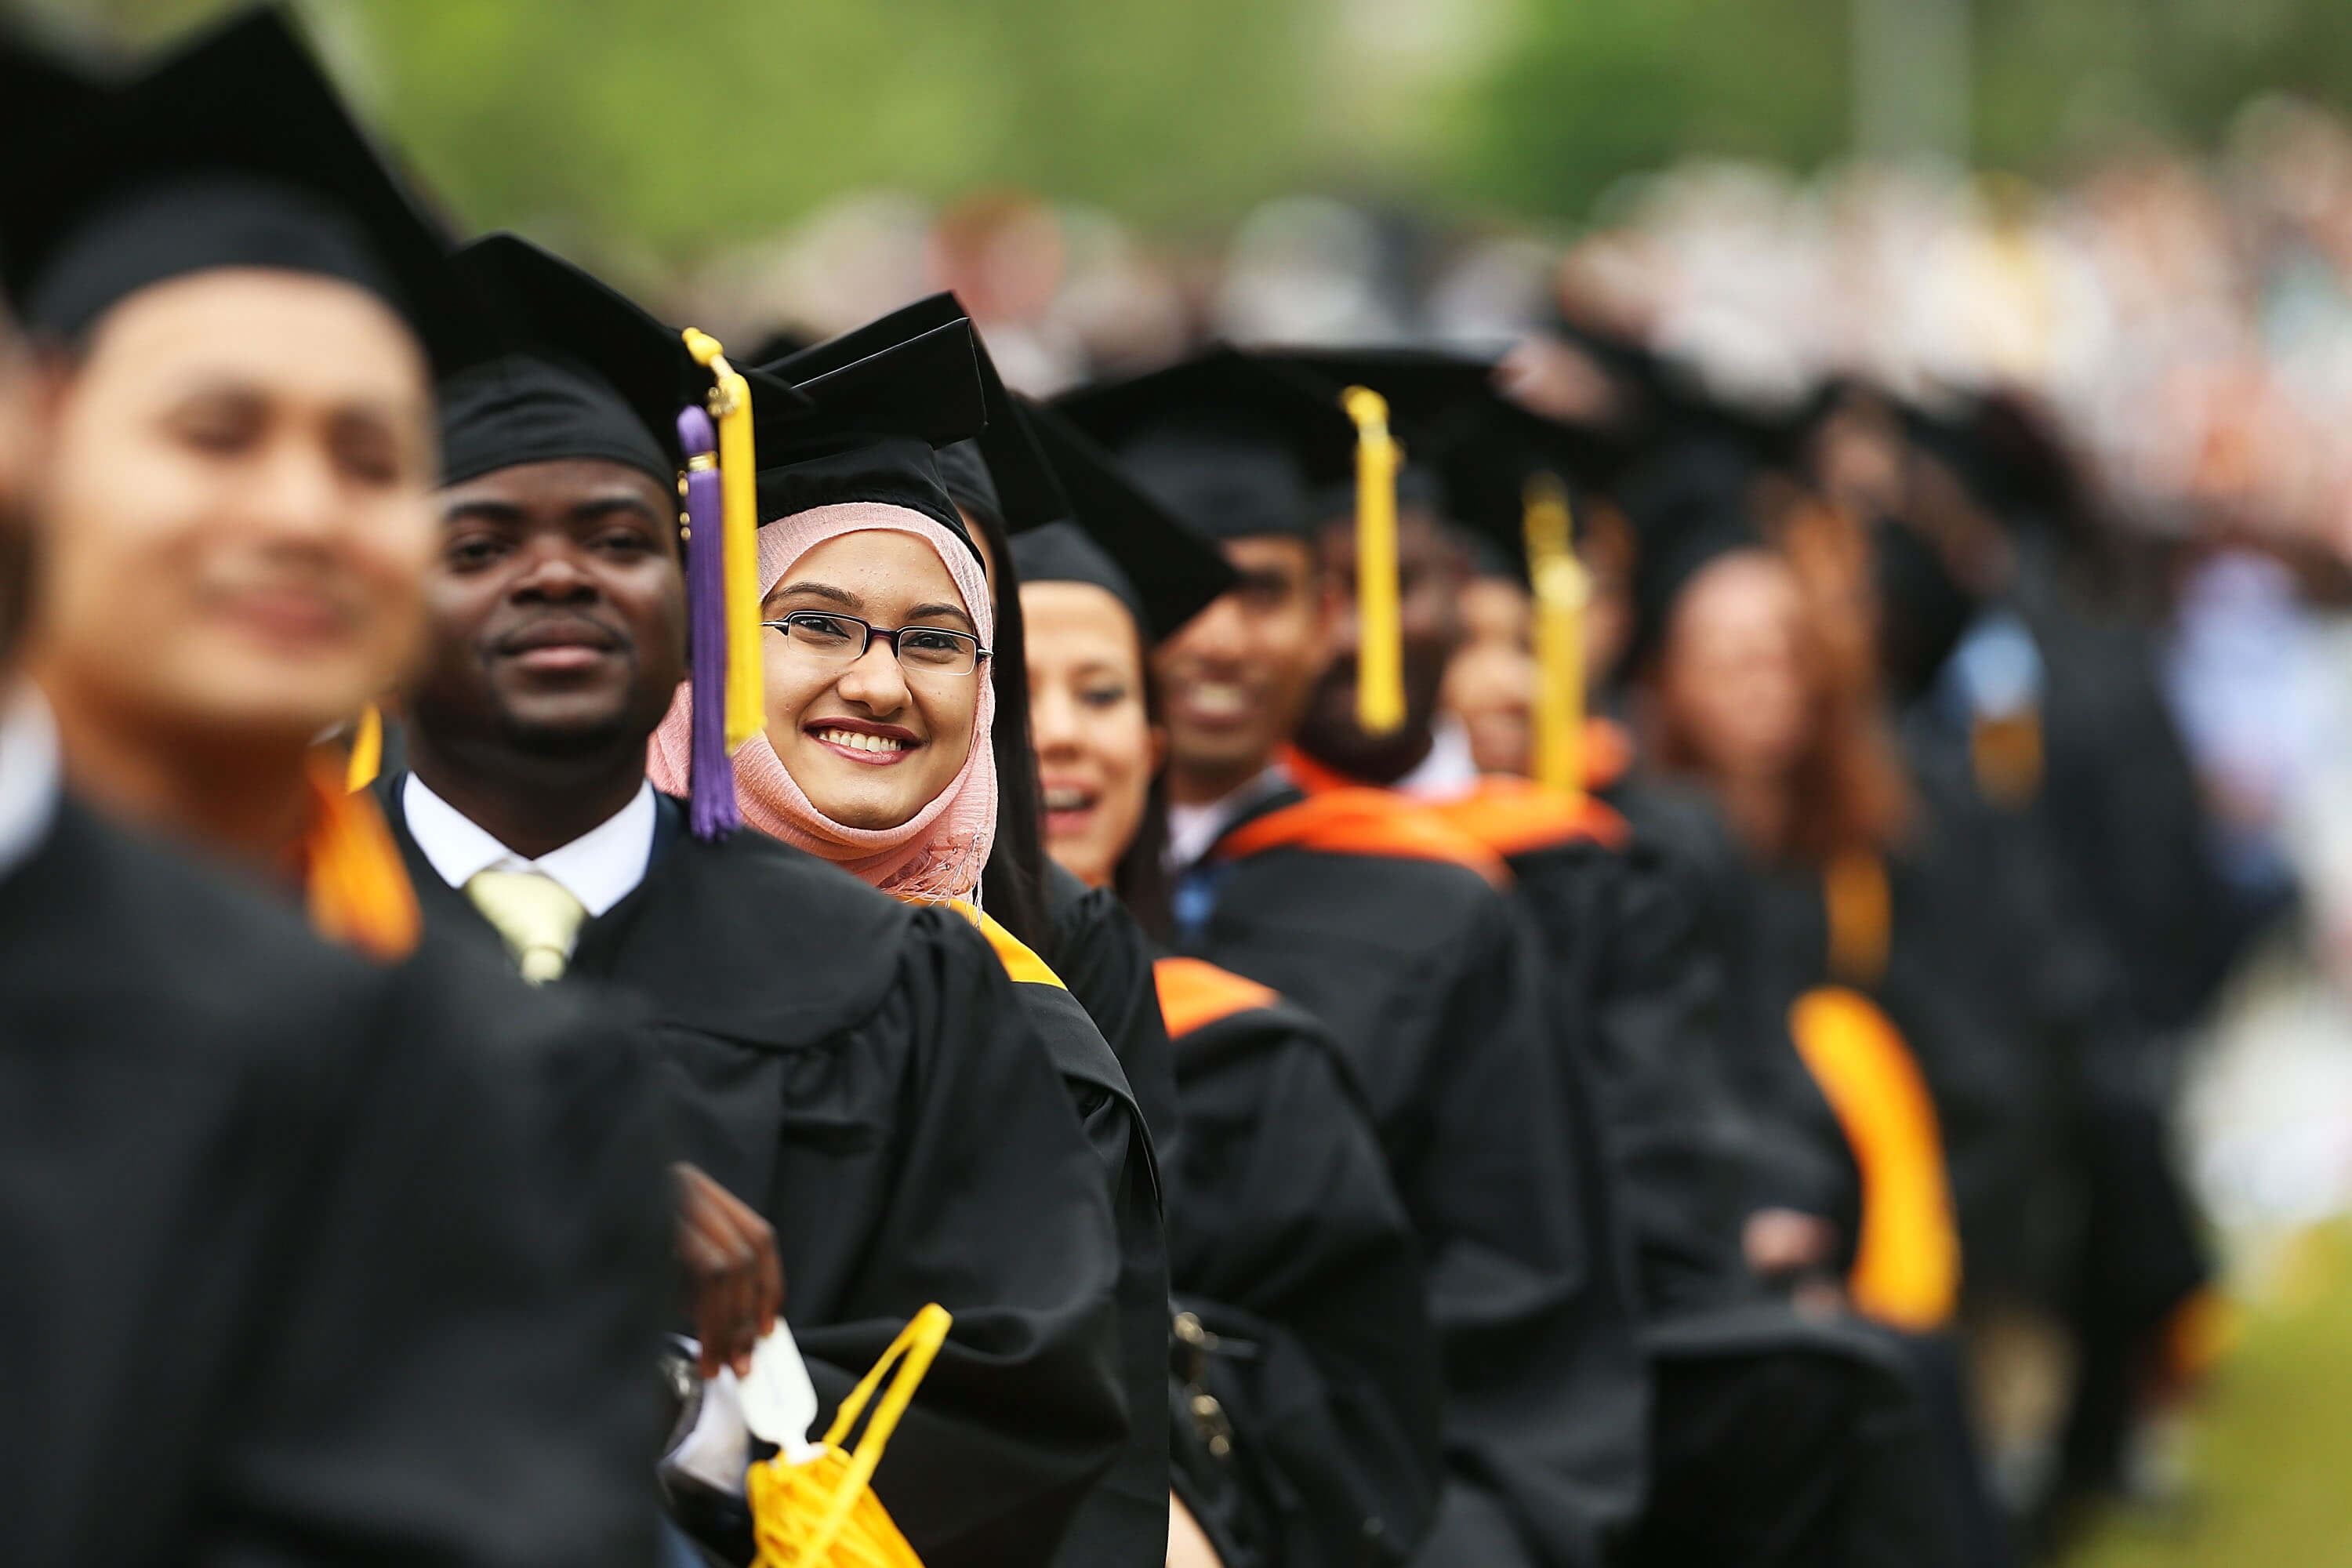 Degree fees: How much you can expect to spend for a bachelor's, master's or PhD degree